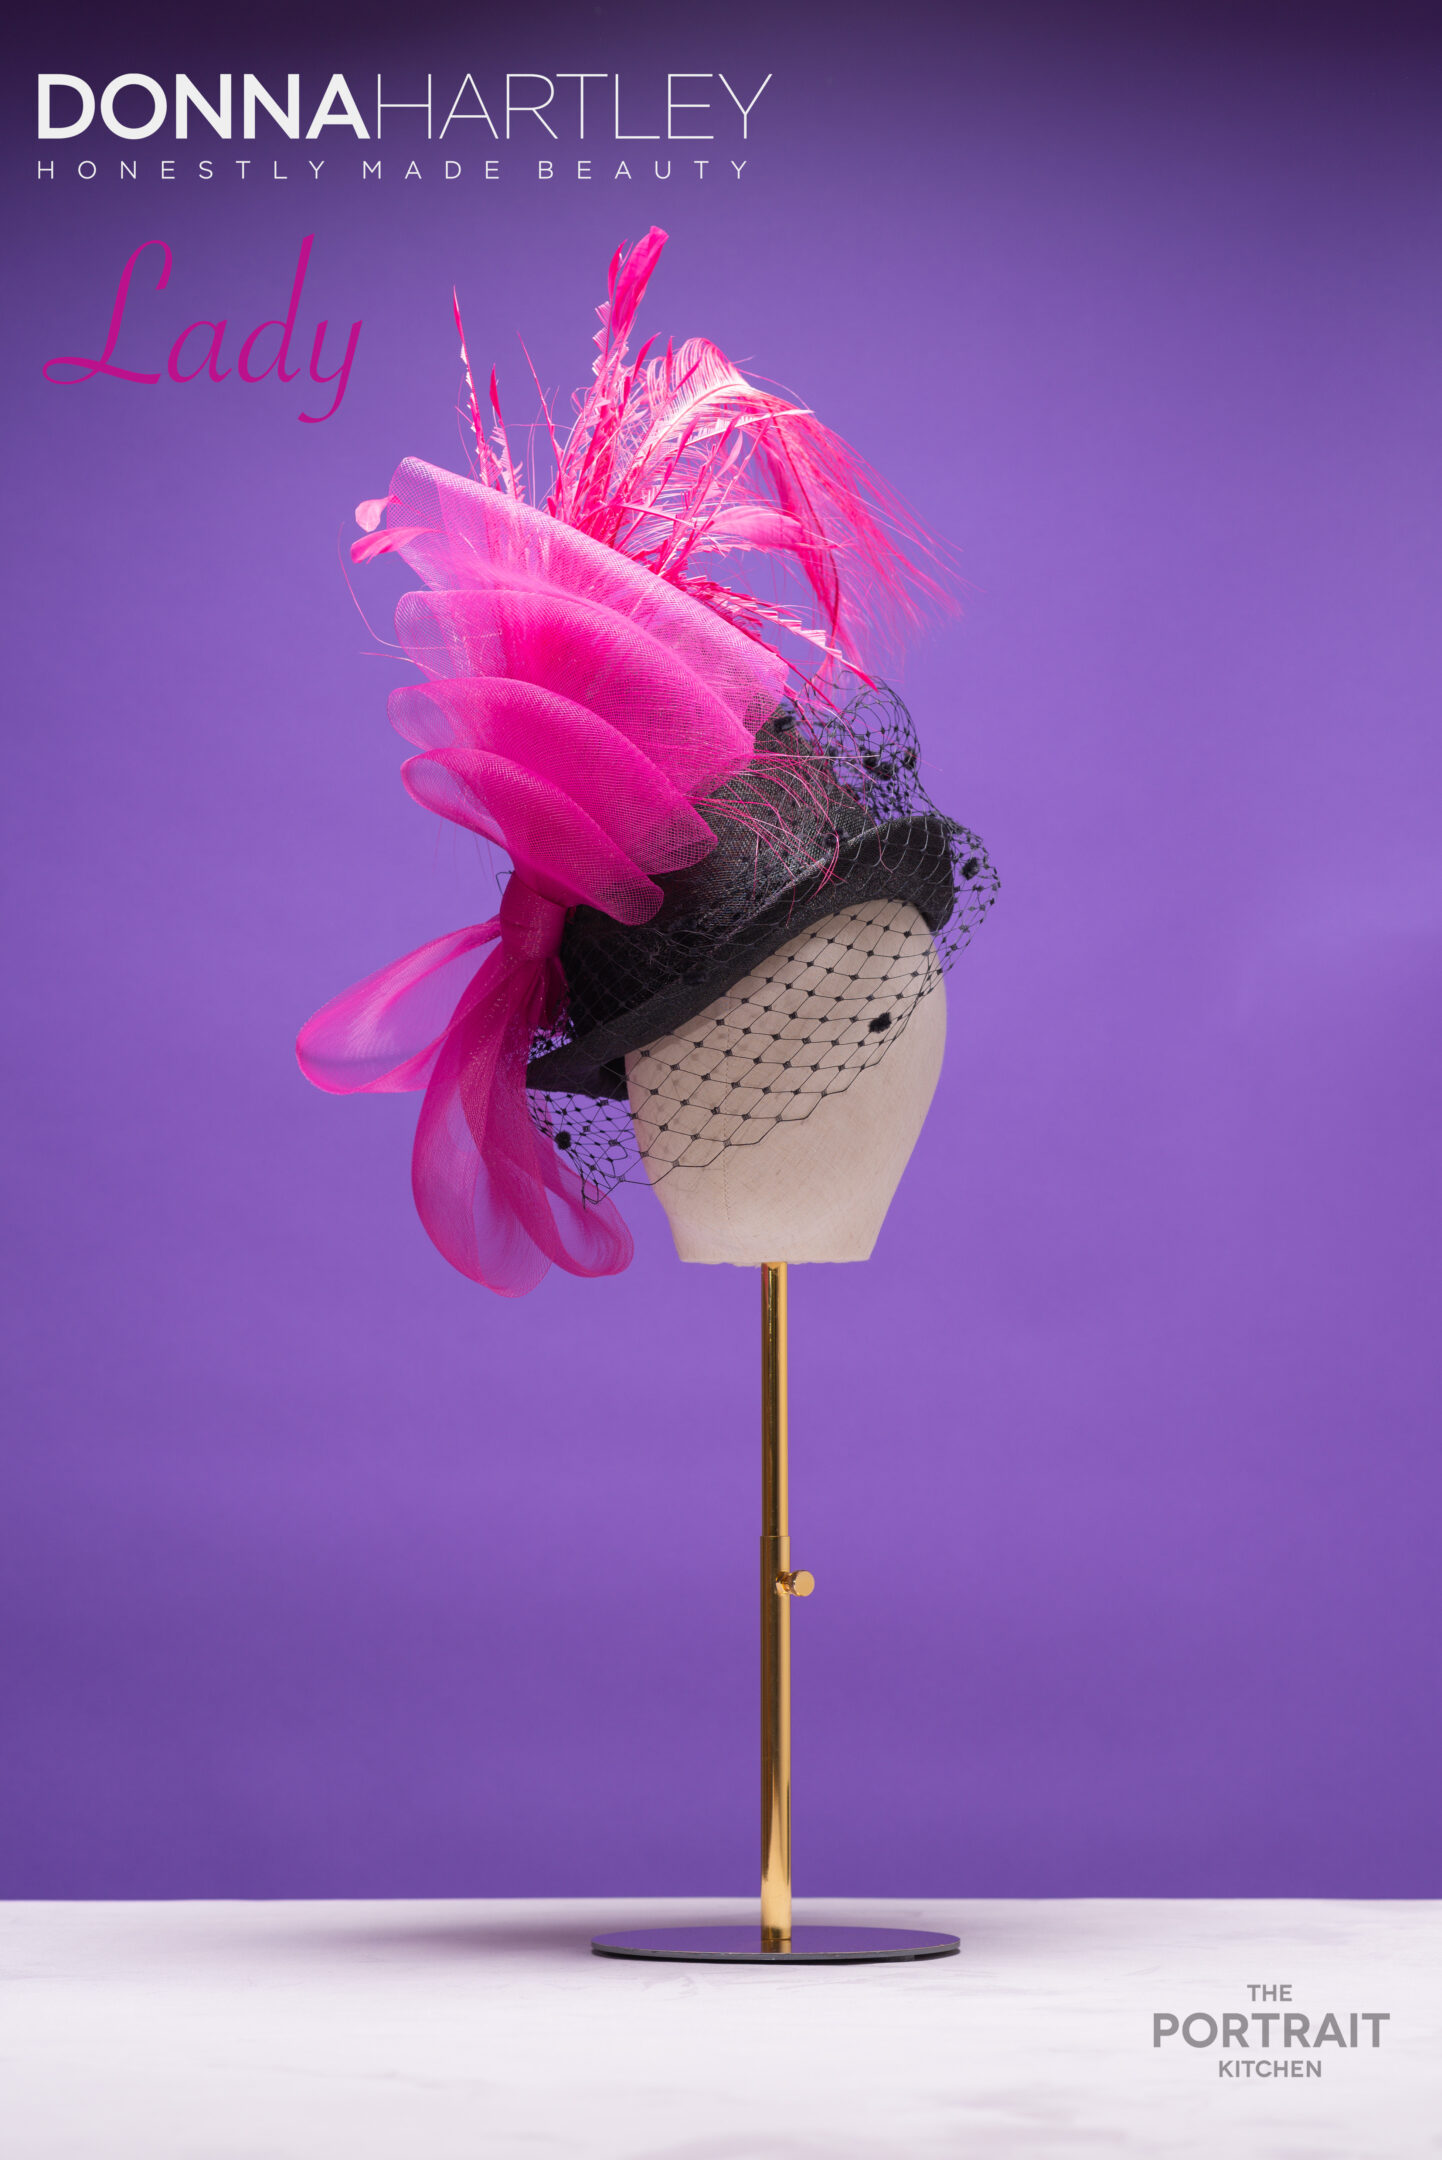 Donna Hartley Millinery - Lady